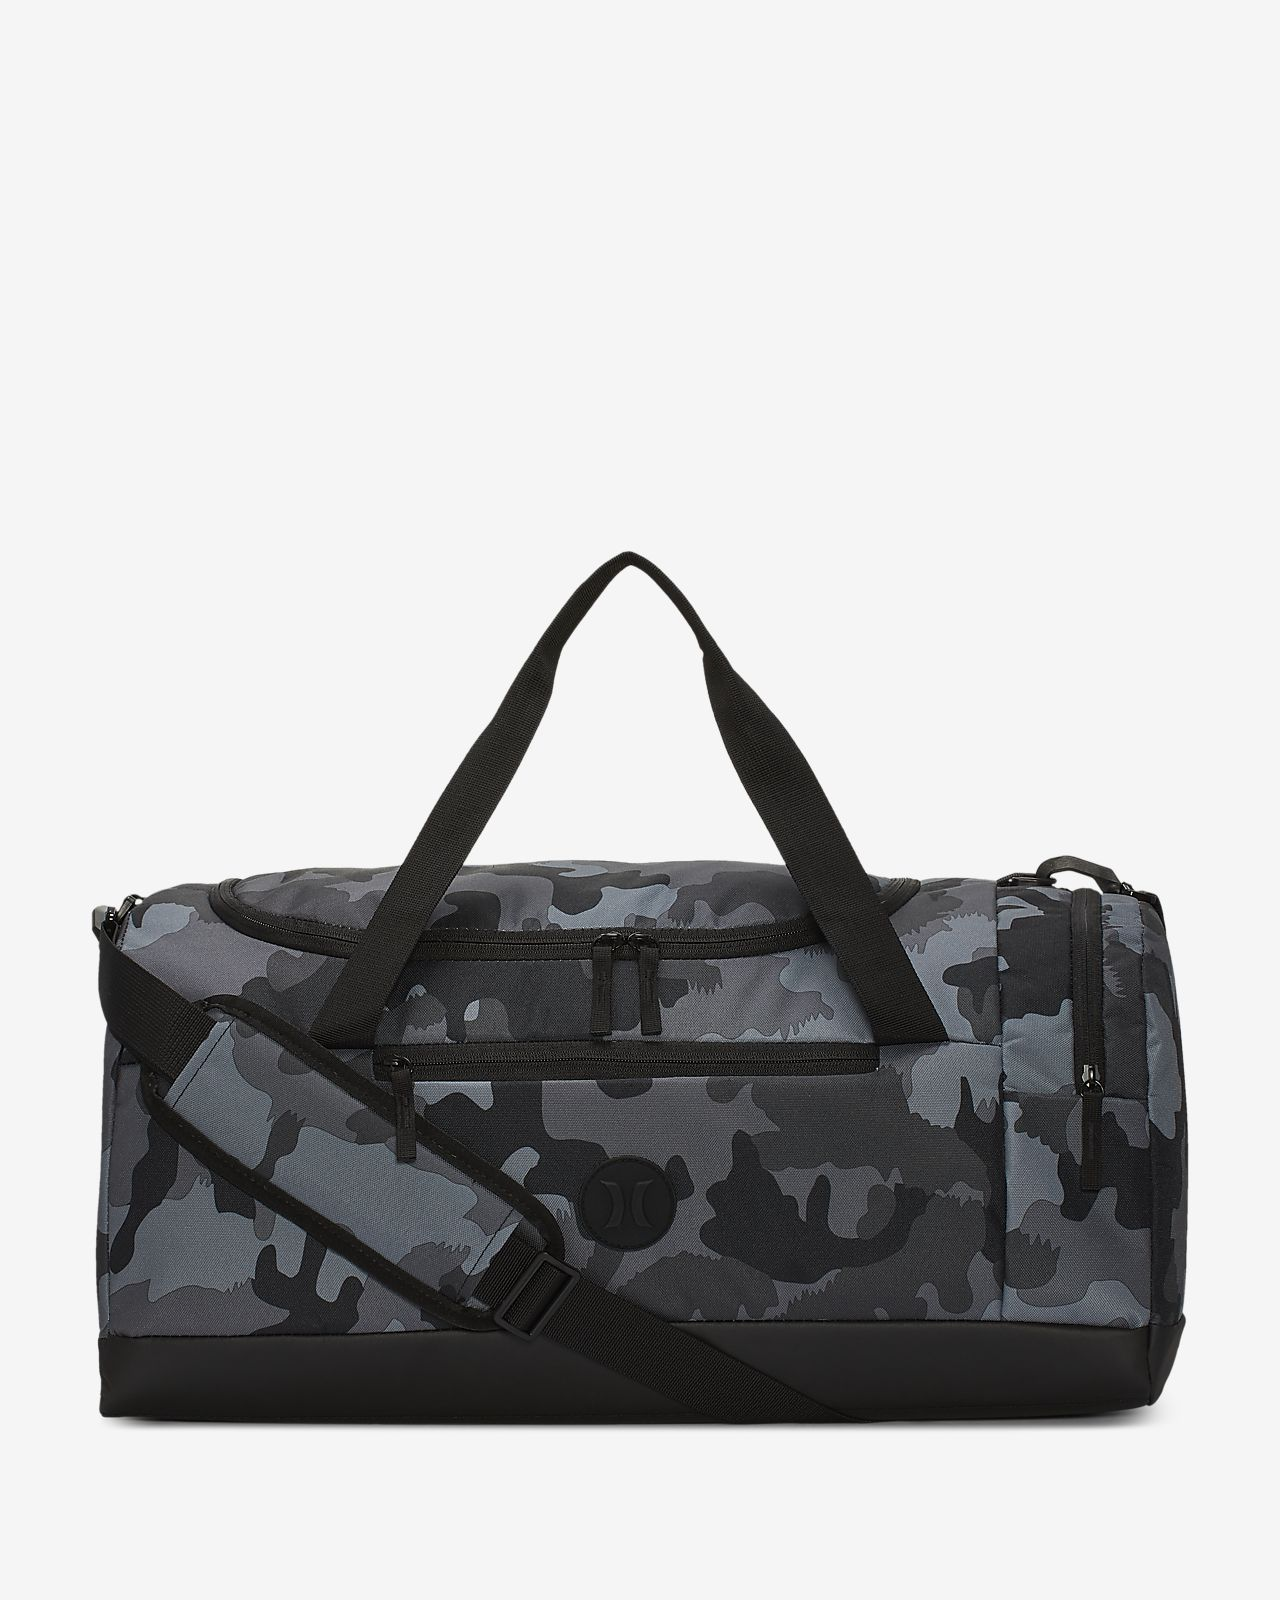 Hurley Renegade II Domino Duffel Bag